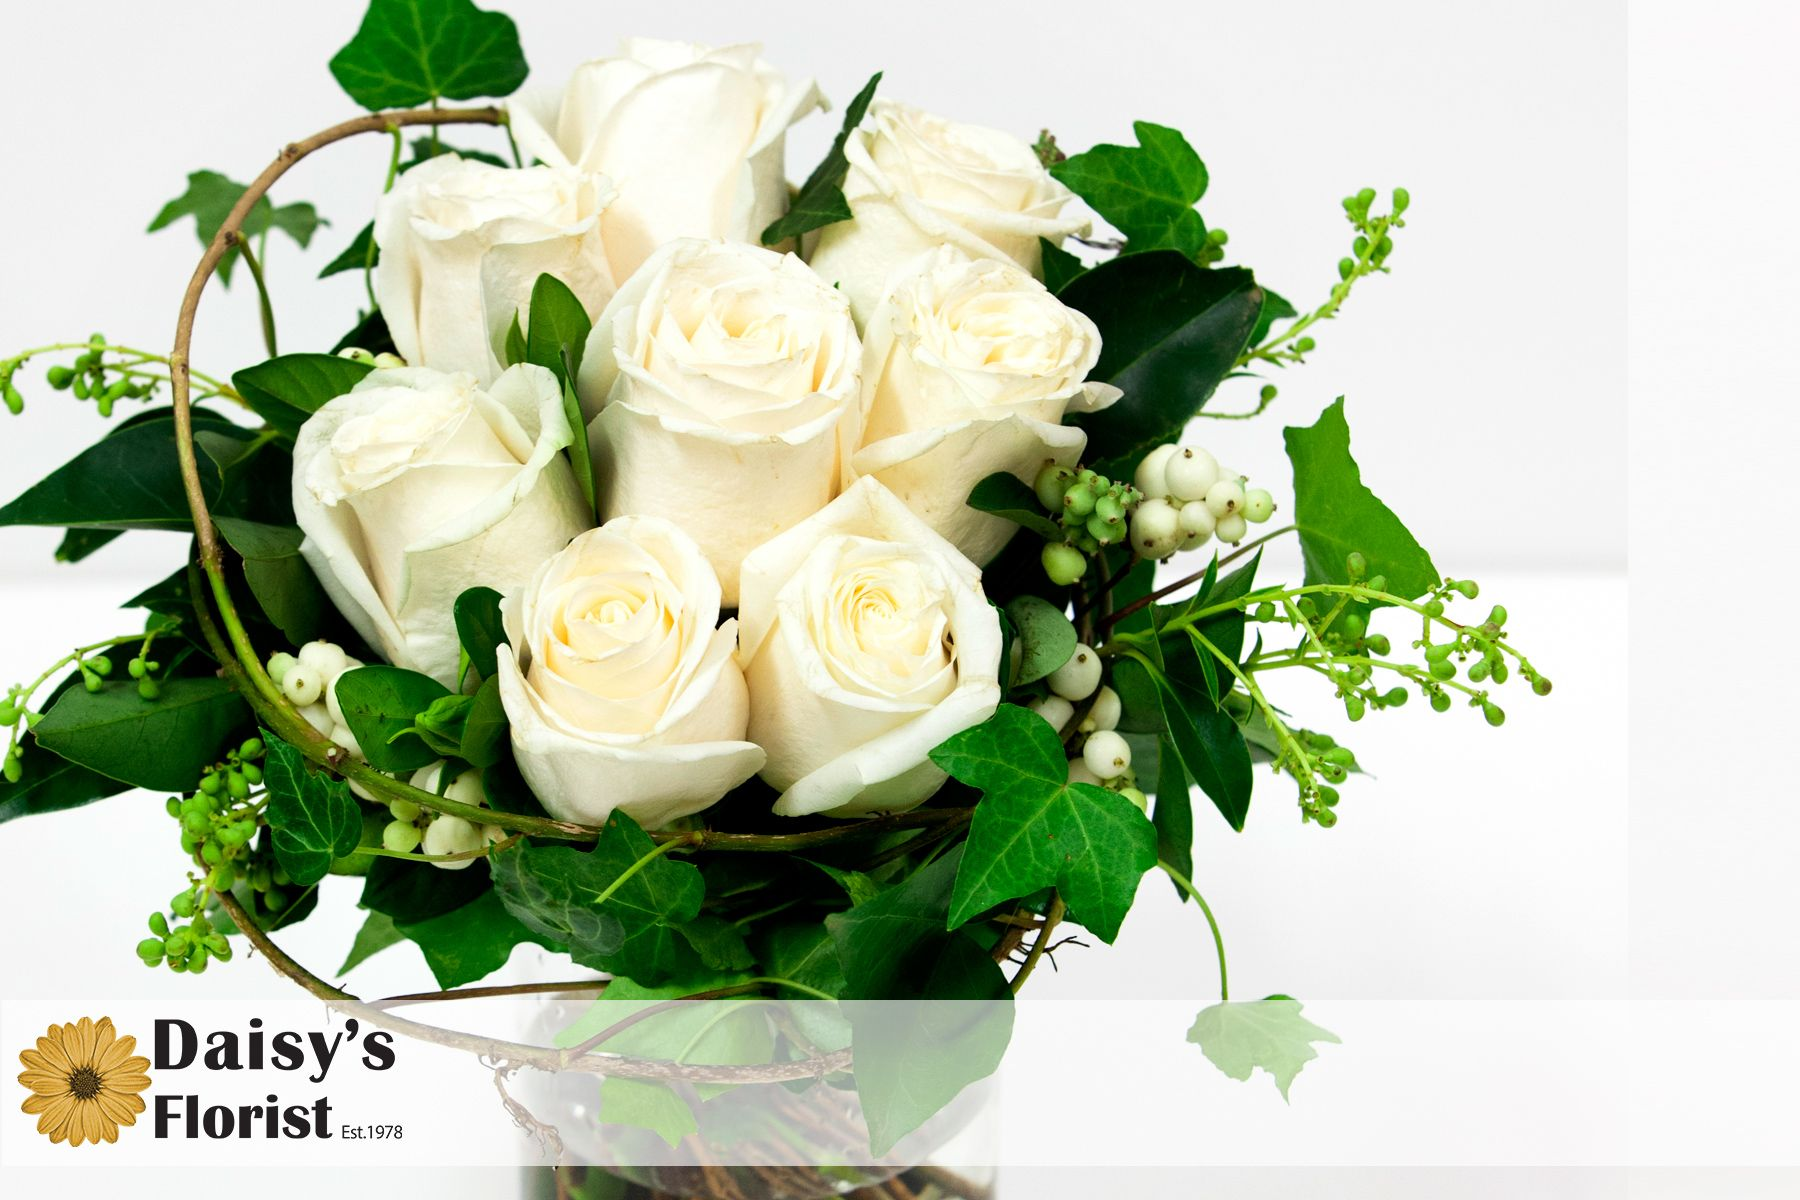 The classic romance of white roses and green ivy